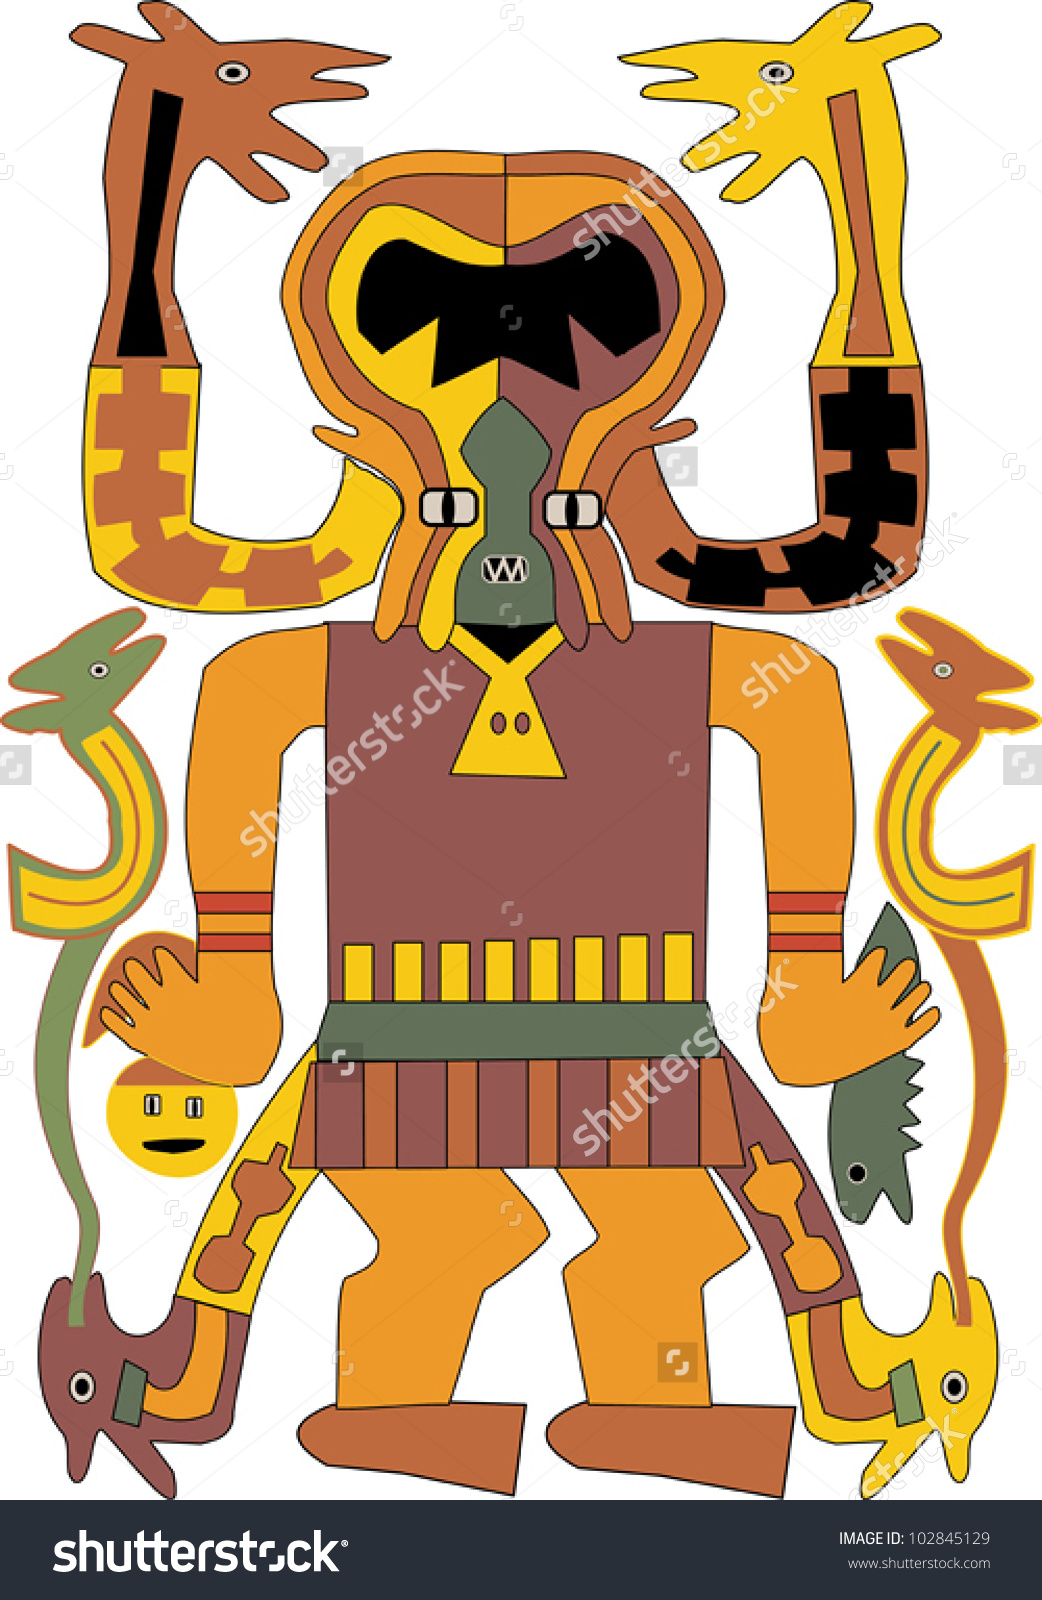 Mythical Characters From Ancient Culture Represented In A Naive.